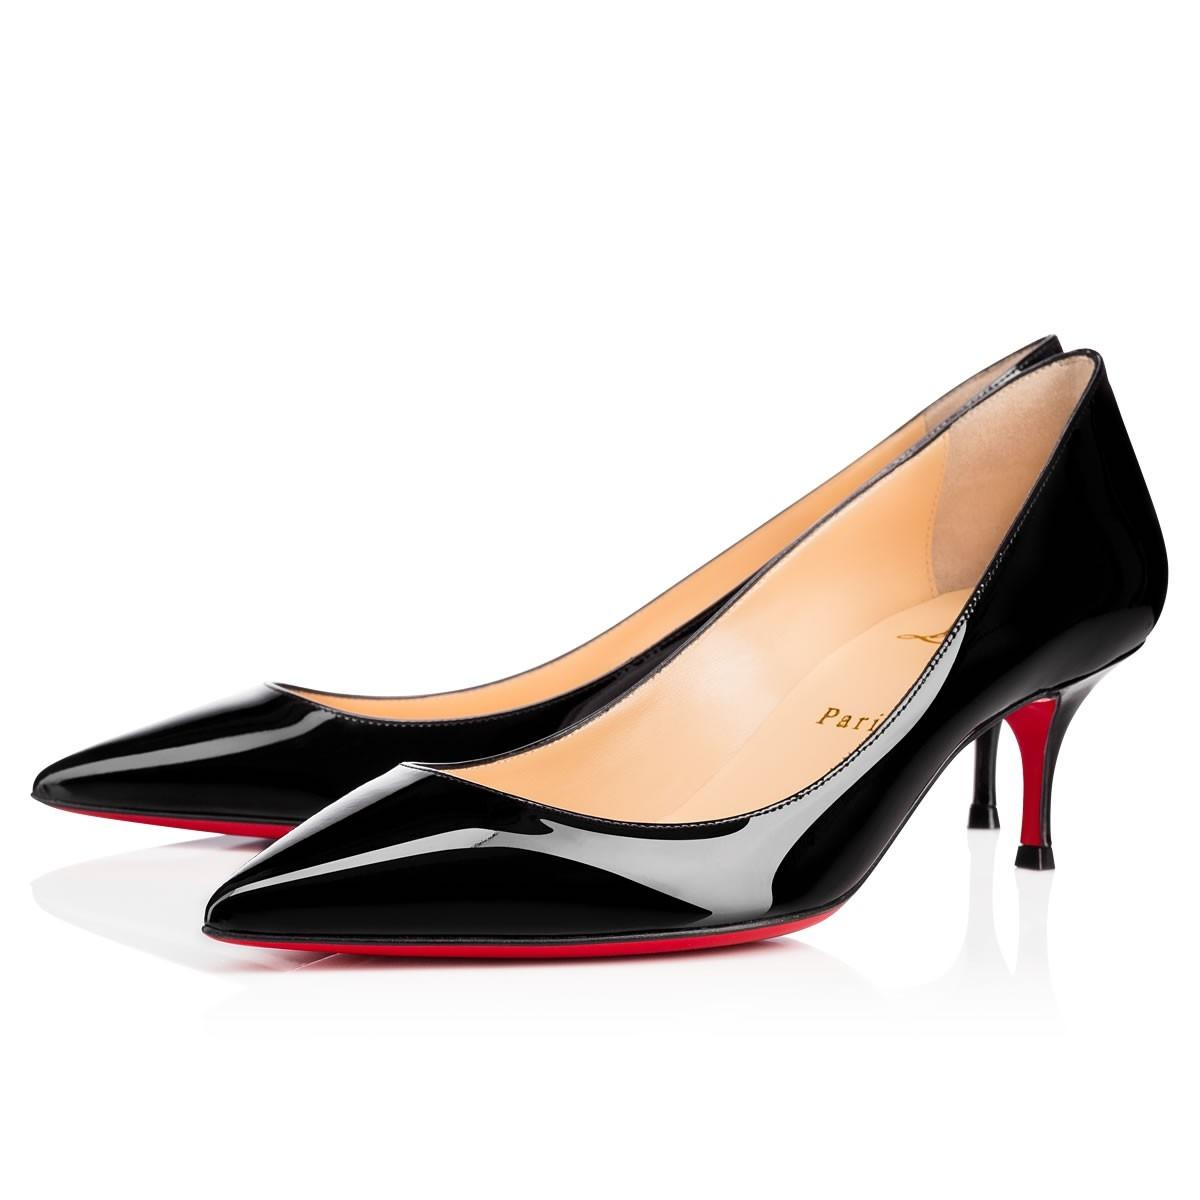 c7b56d7e8ad9 Christian Louboutin Black Pigalle Pigalle Pigalle Follies 55 Patent Leather  Kitten Heel Pumps Size EU 36 (Approx. US 6) Regular (M